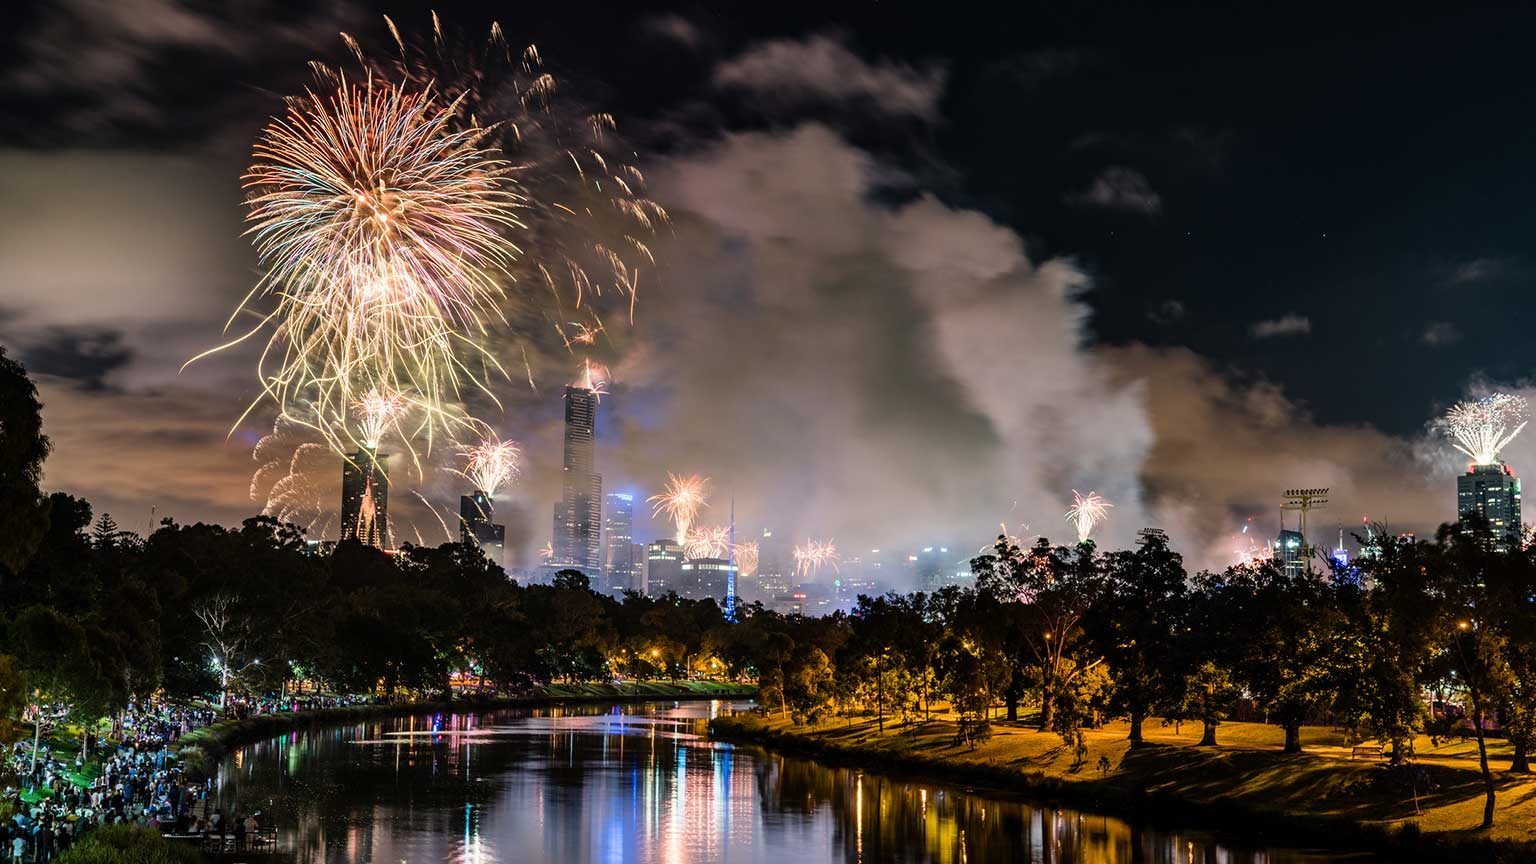 Fireworks over the Yarra River on New Year's Eve